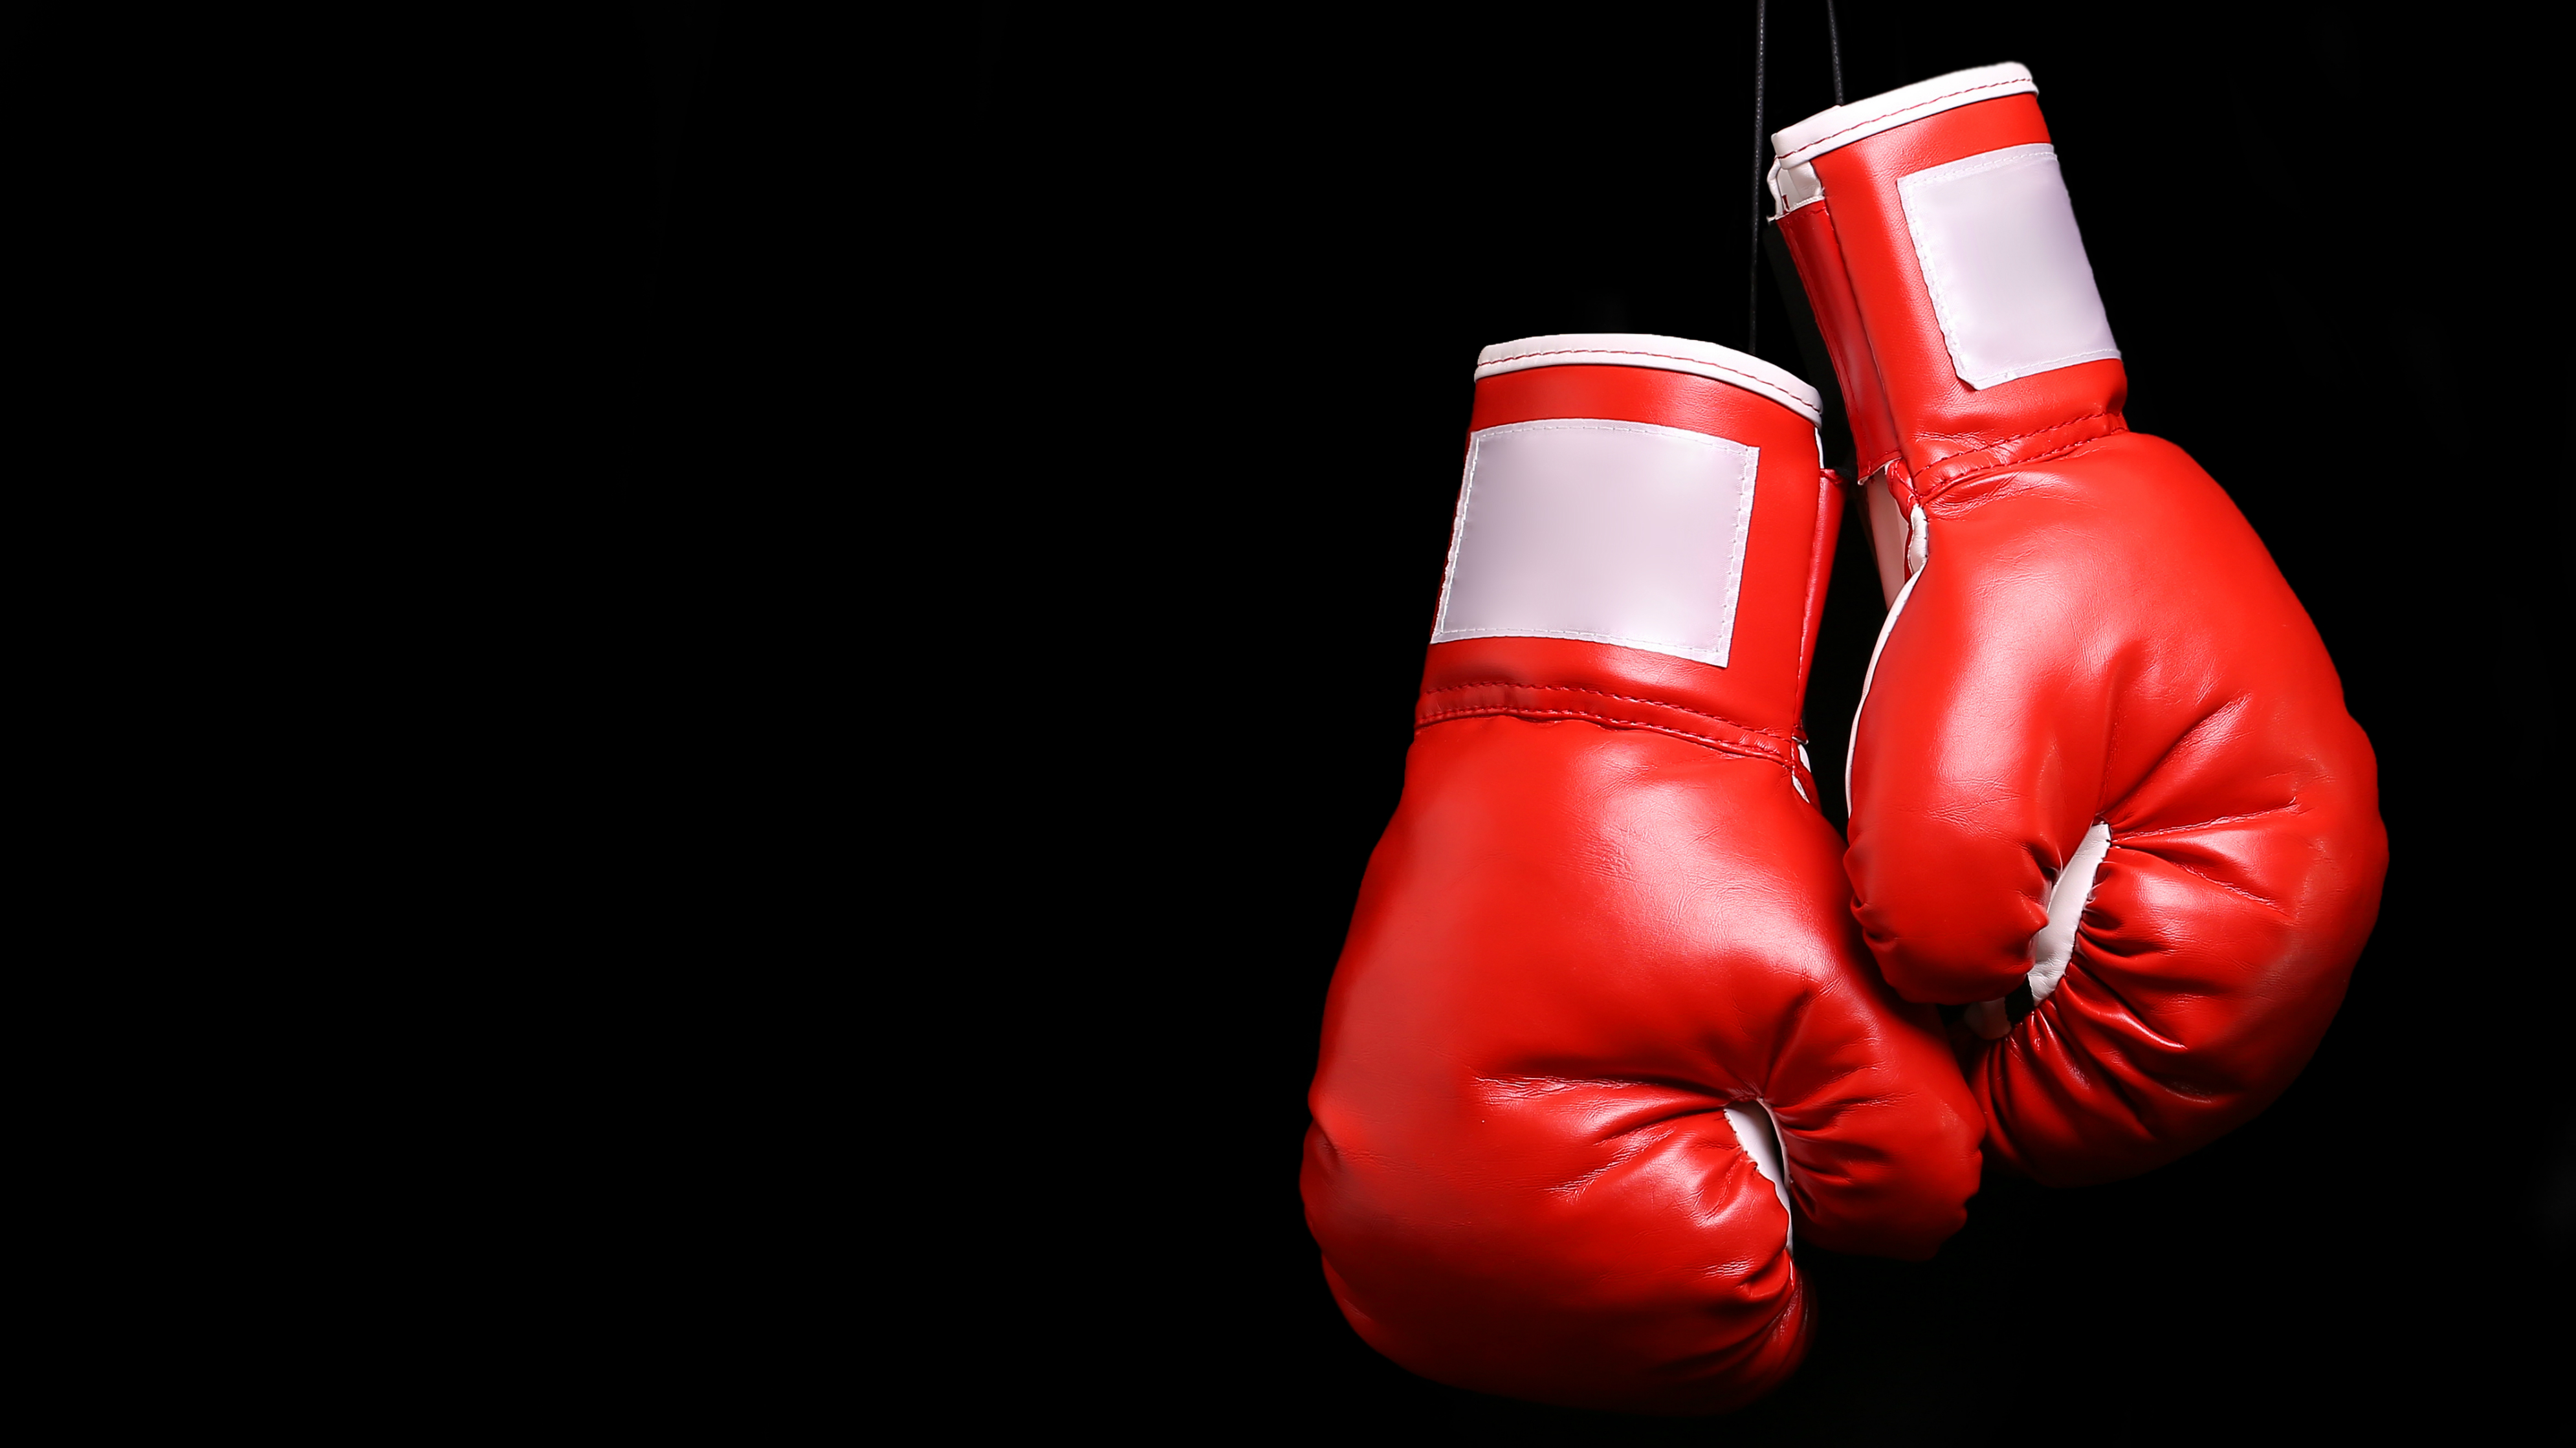 Shiv Naresh Teens Boxing Gloves 12oz: Best Boxing Gloves 2018: The Best Gloves Around, From